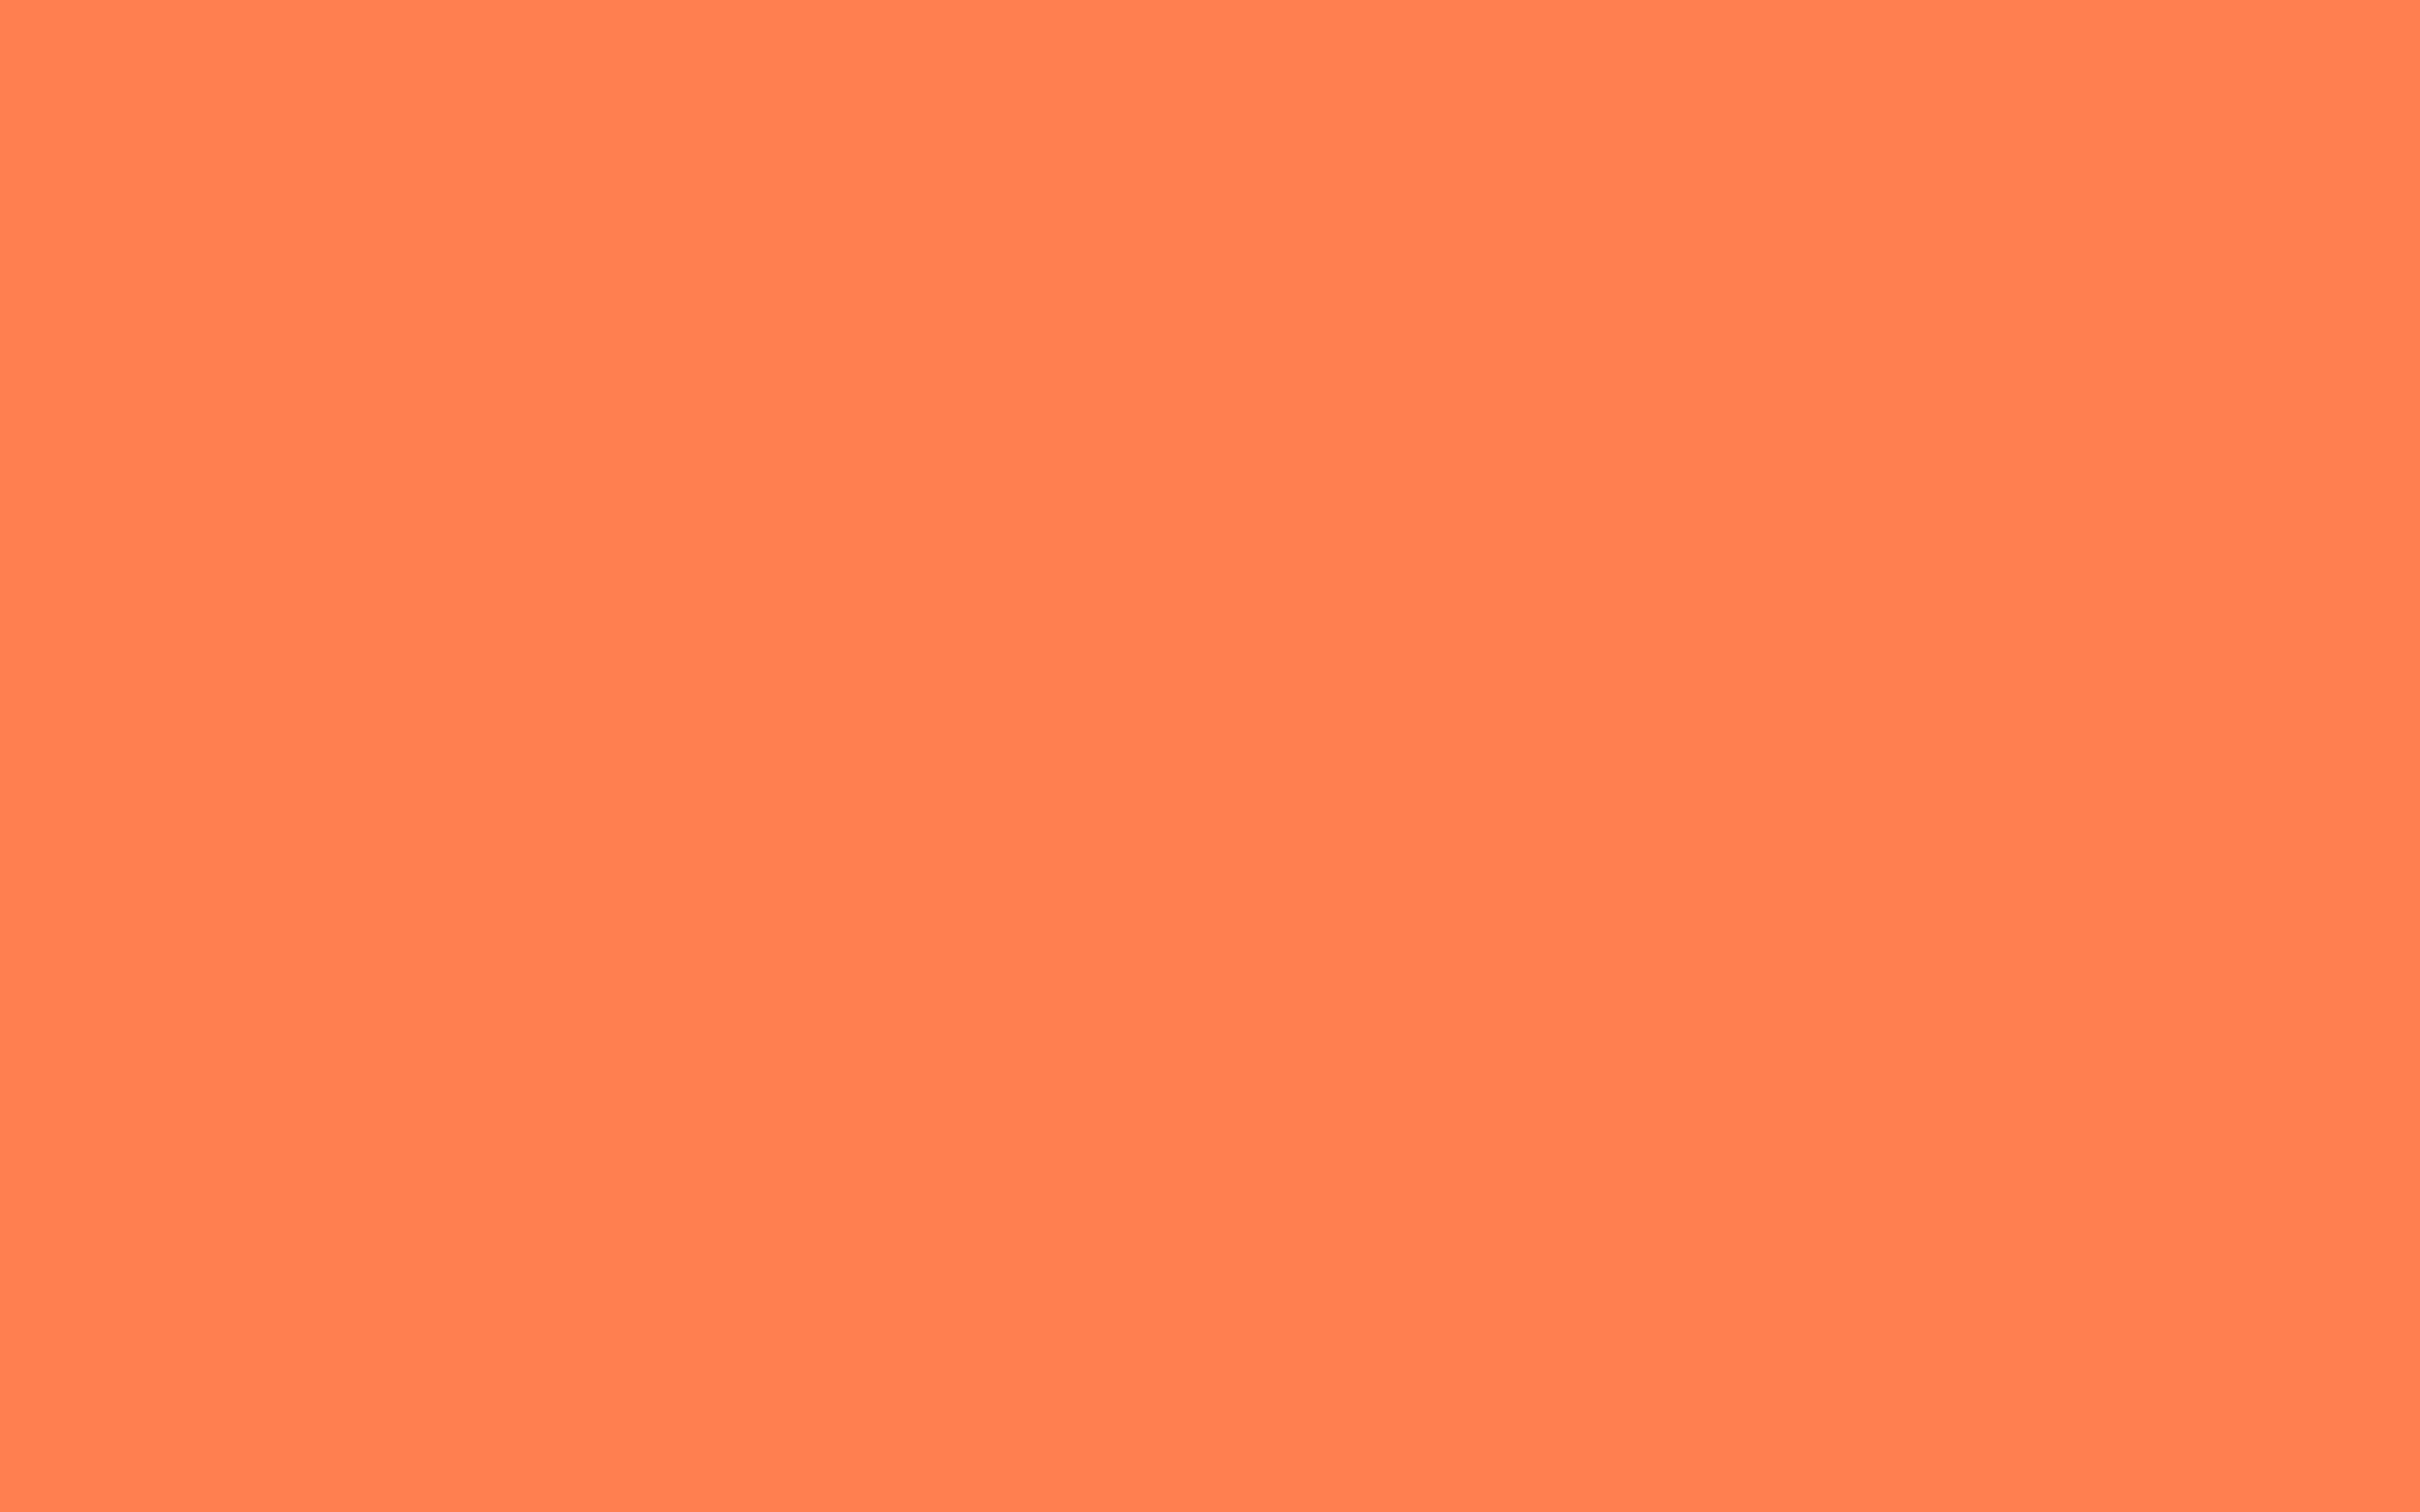 2880x1800 Coral Solid Color Background